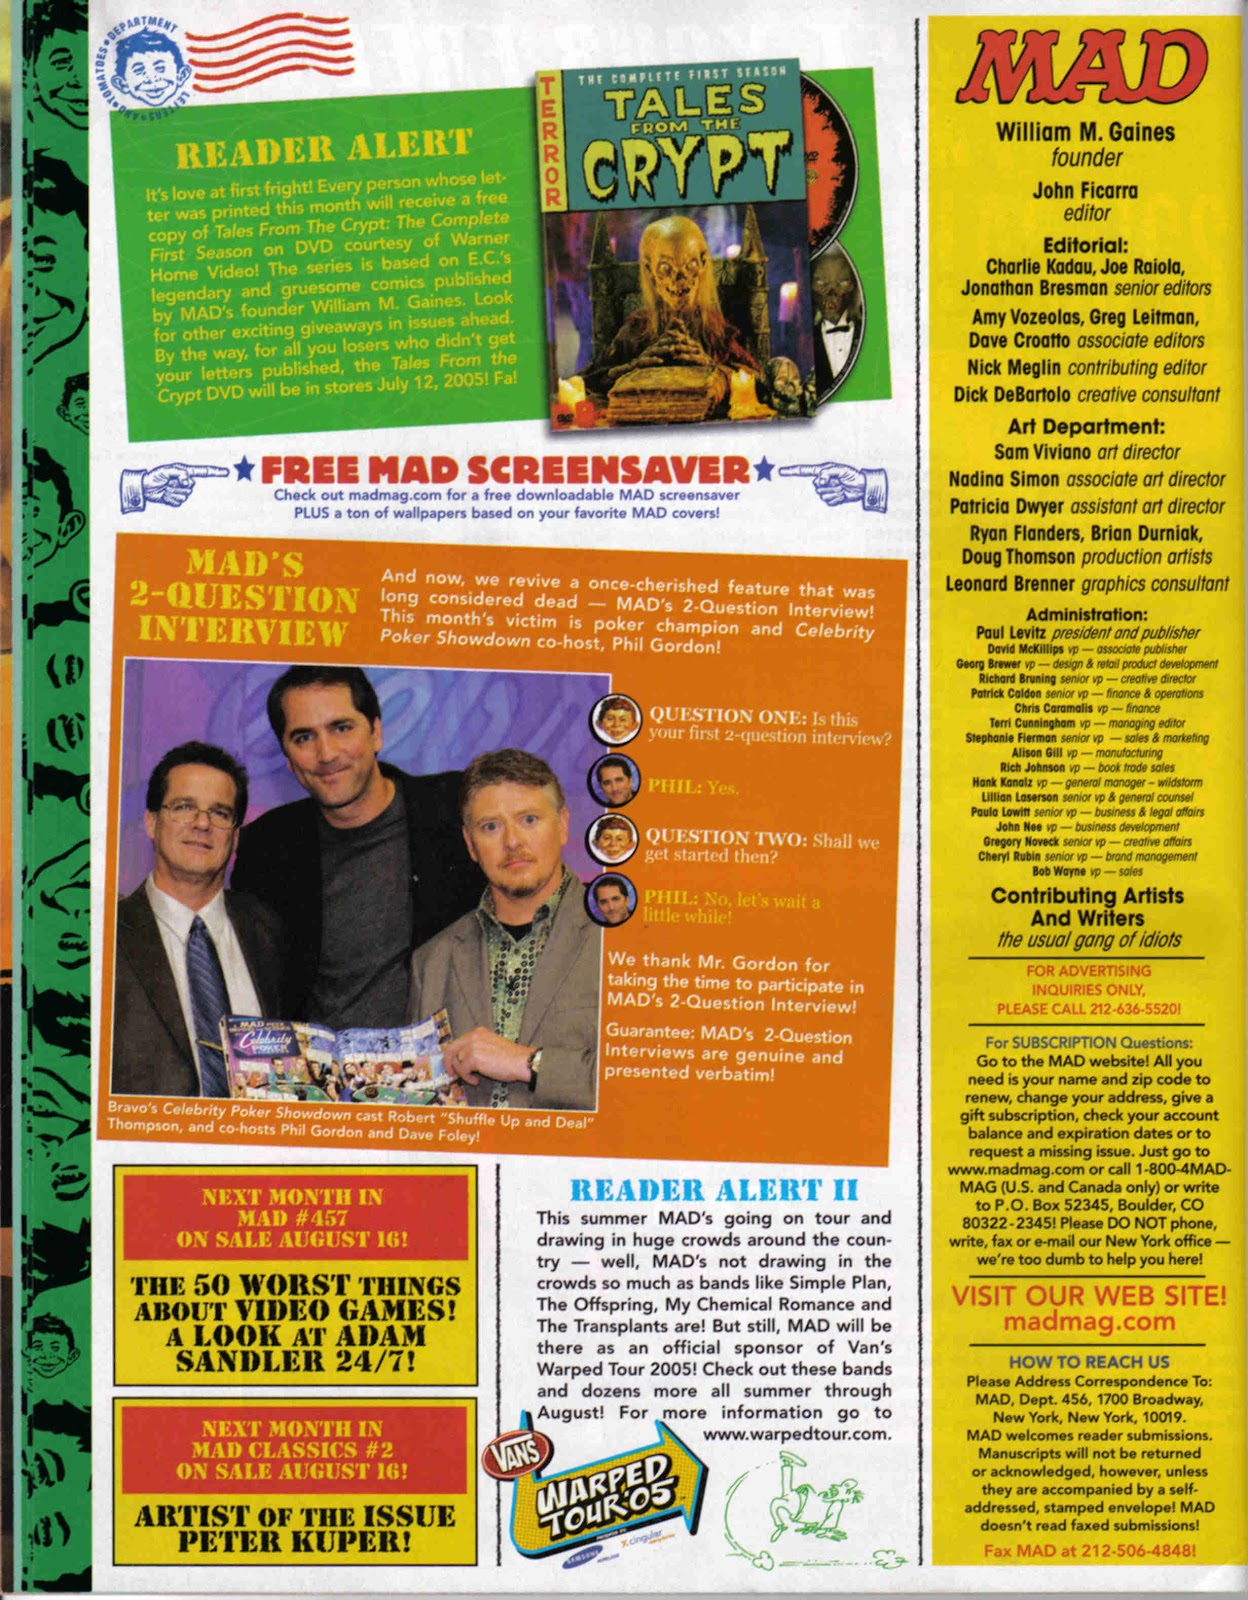 MAD issue 456 - Page 6